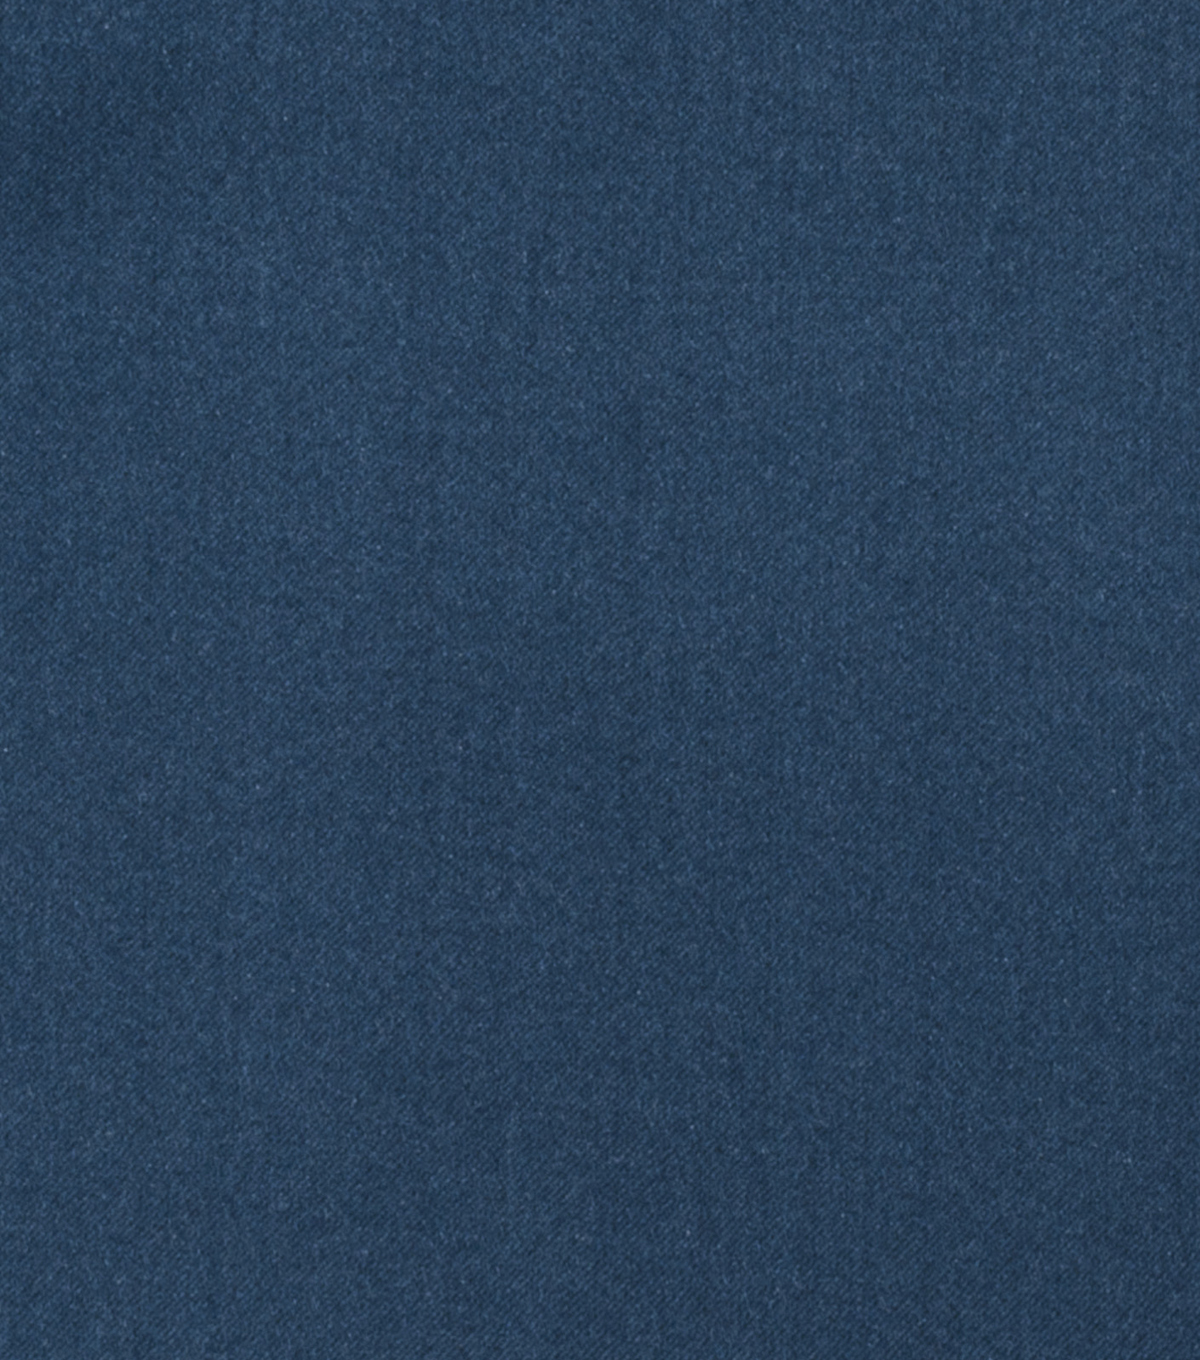 "Home Decor 8""x8"" Fabric Swatch-Signature Series Couture Satin Marine"